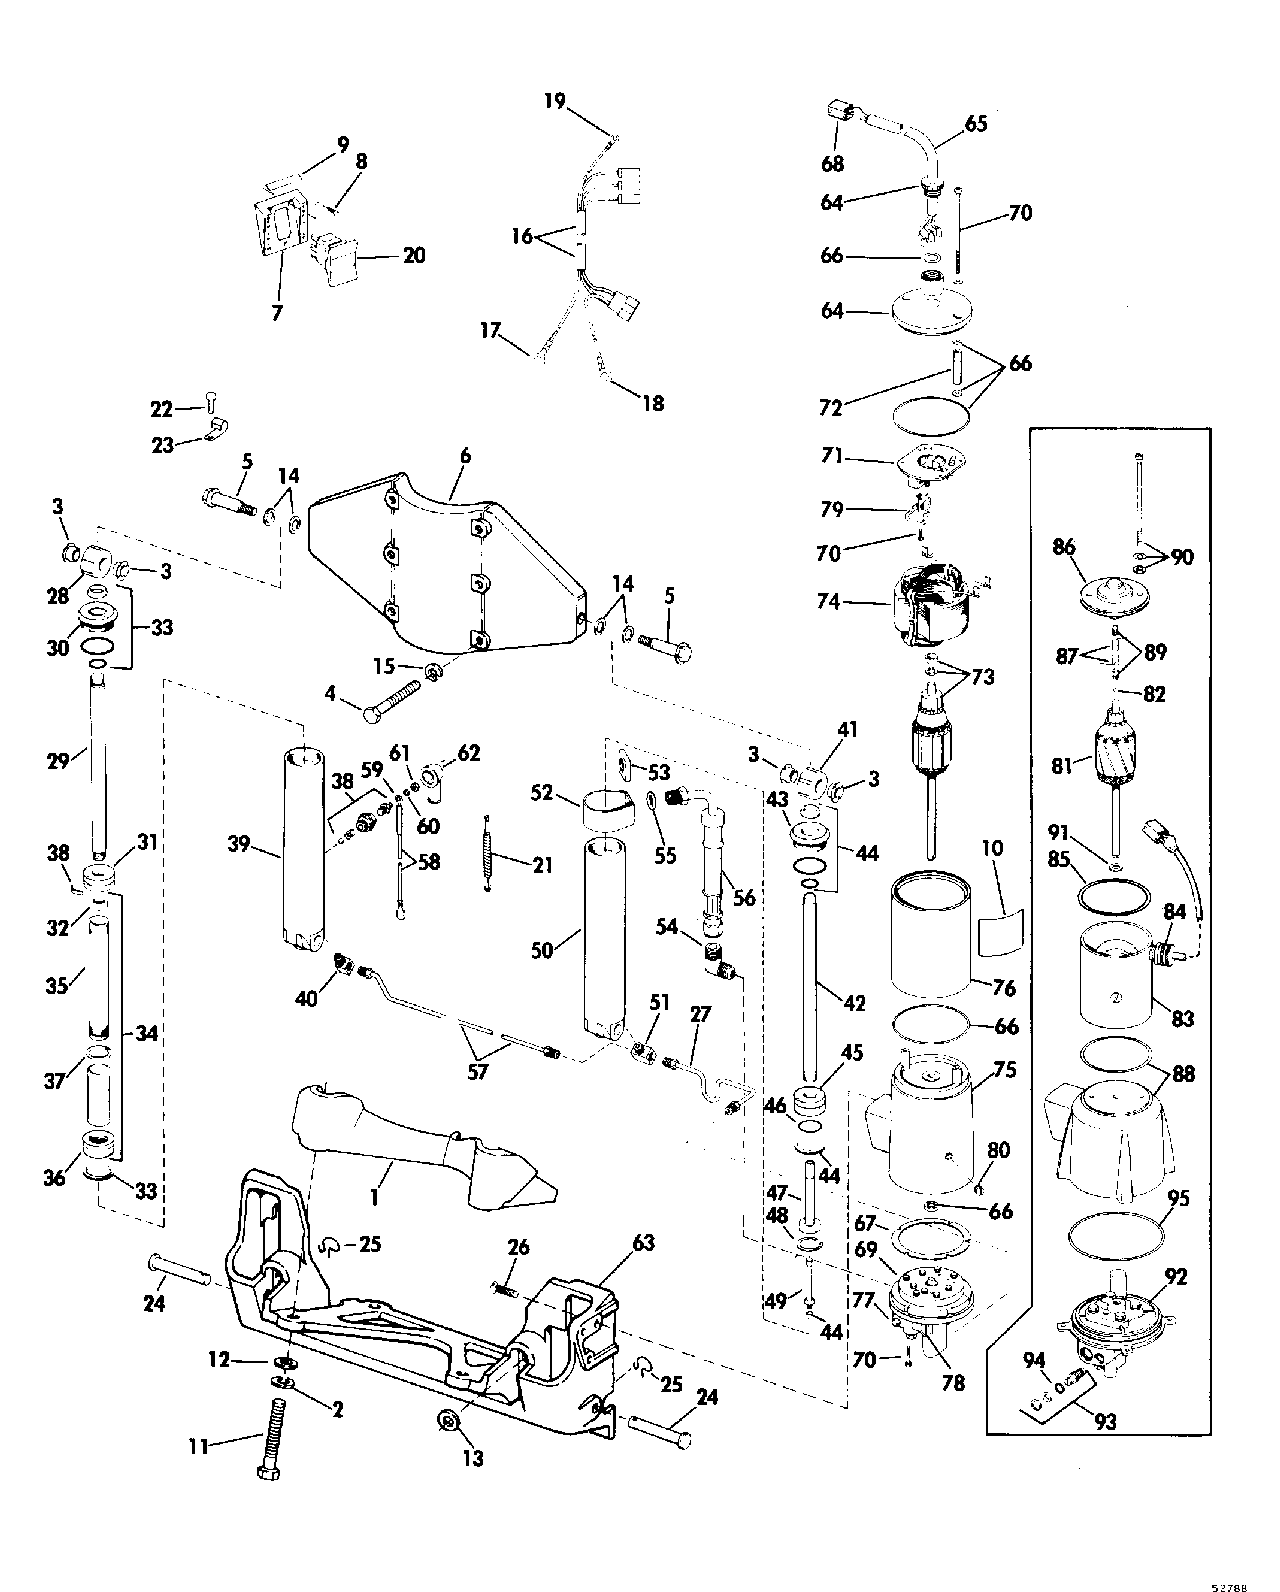 Wiring Diagrams For 1986 115 Johnson Outboard, Wiring